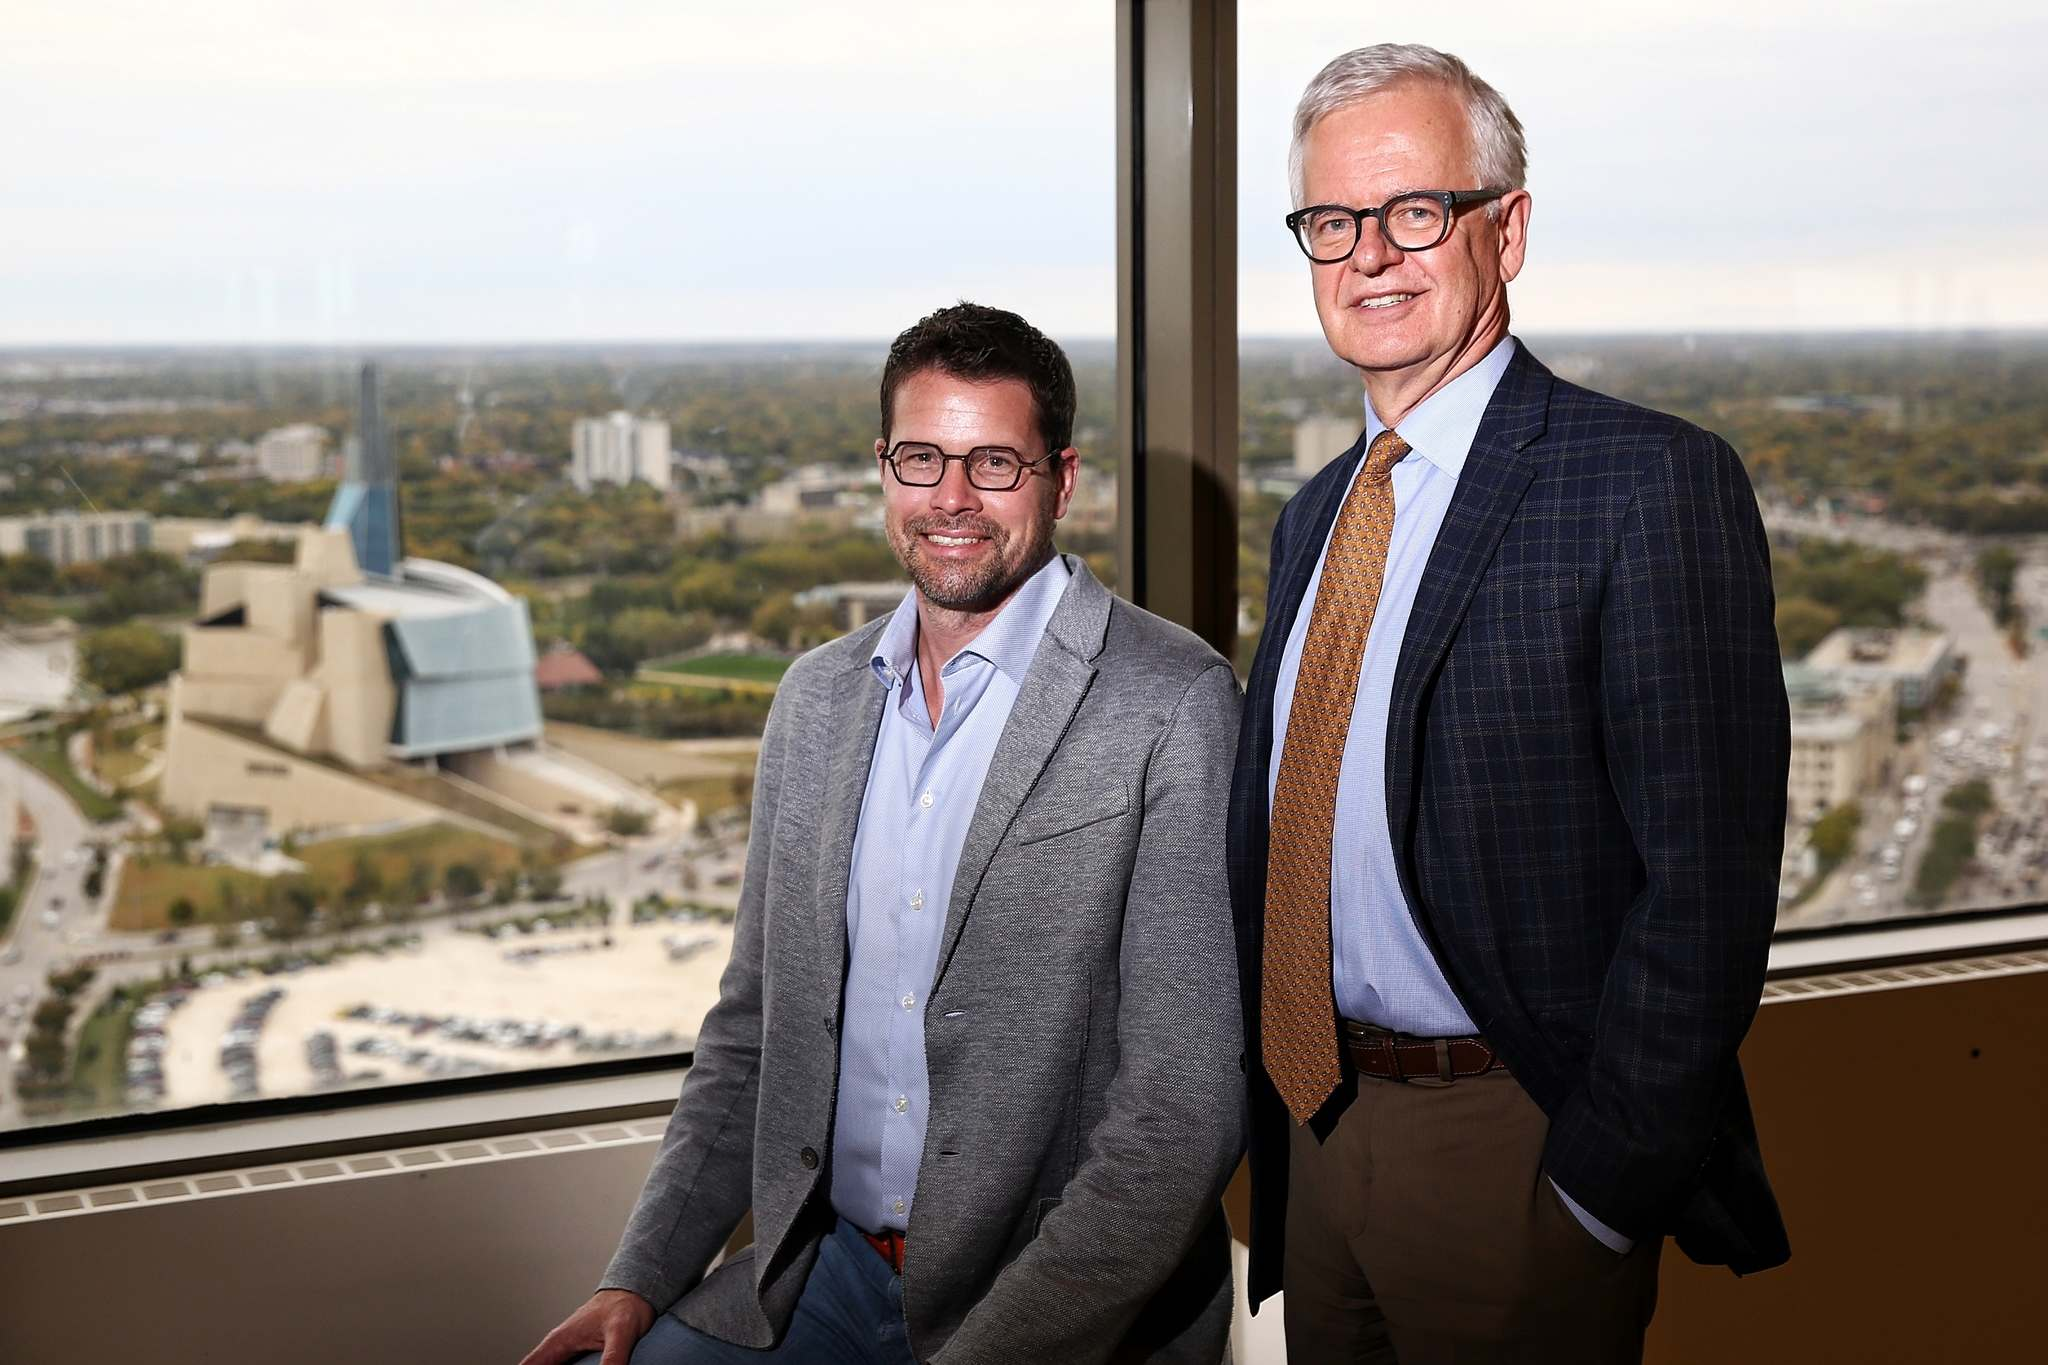 MIKE DEAL / WINNIPEG FREE PRESS</p><p>David Filmon and Herb Peters of Aikins, MacAulay &amp; Thorvaldson LLP in Winnipeg have announced a merger with Saskatchewan&rsquo;s largest full-service firm, MacPherson Leslie &amp; Tyerman LLP.</p>